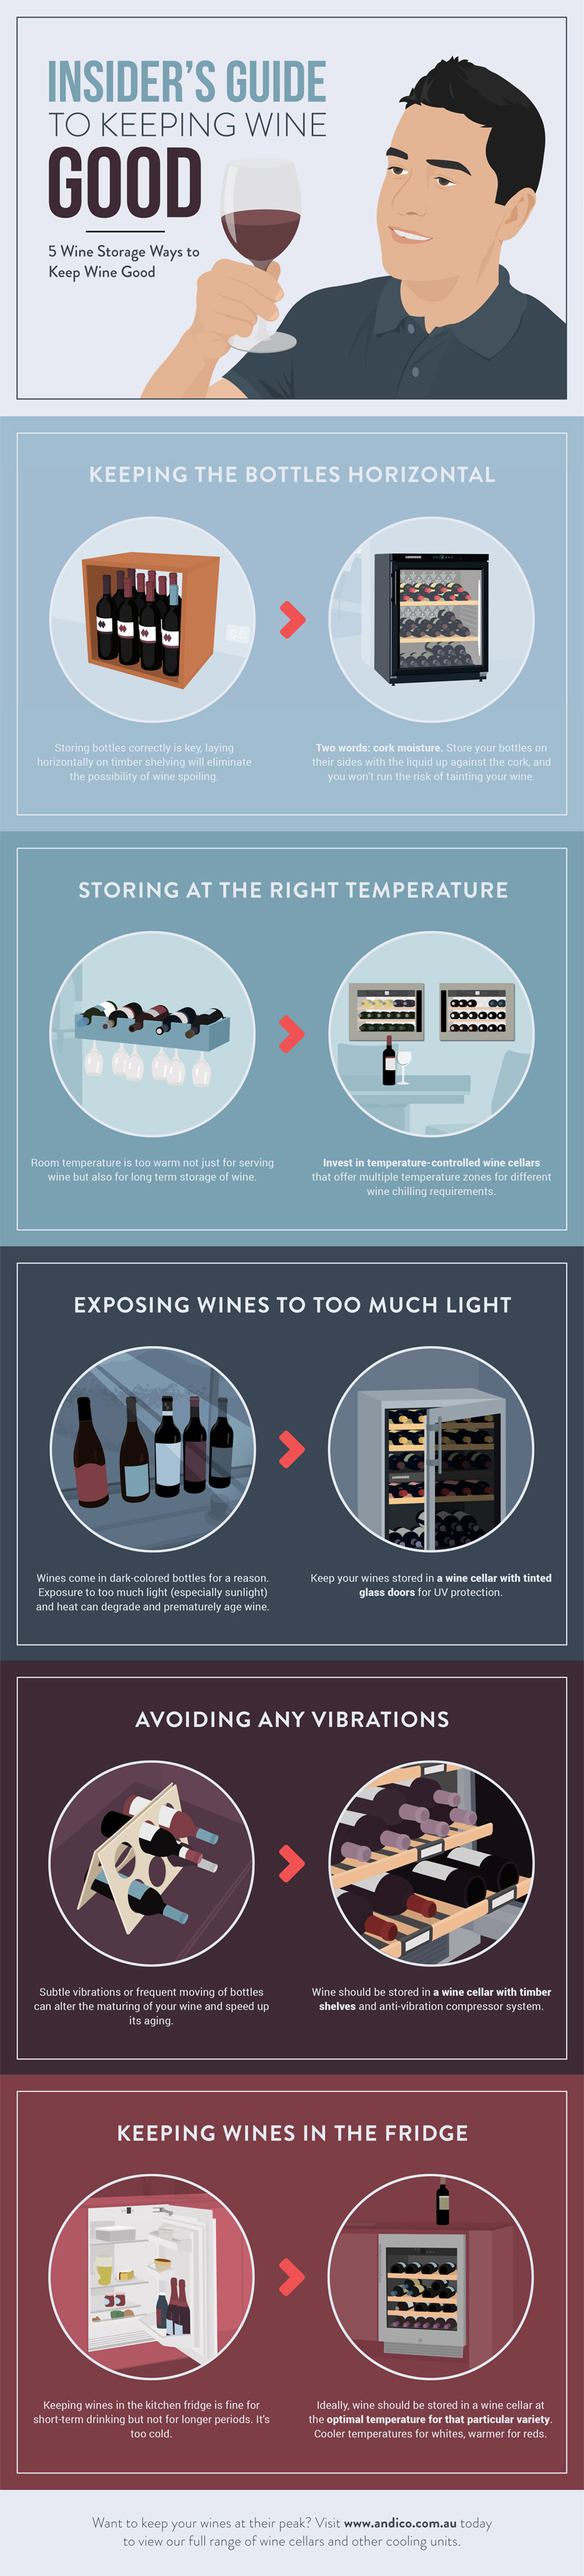 How to Keep Wine Good